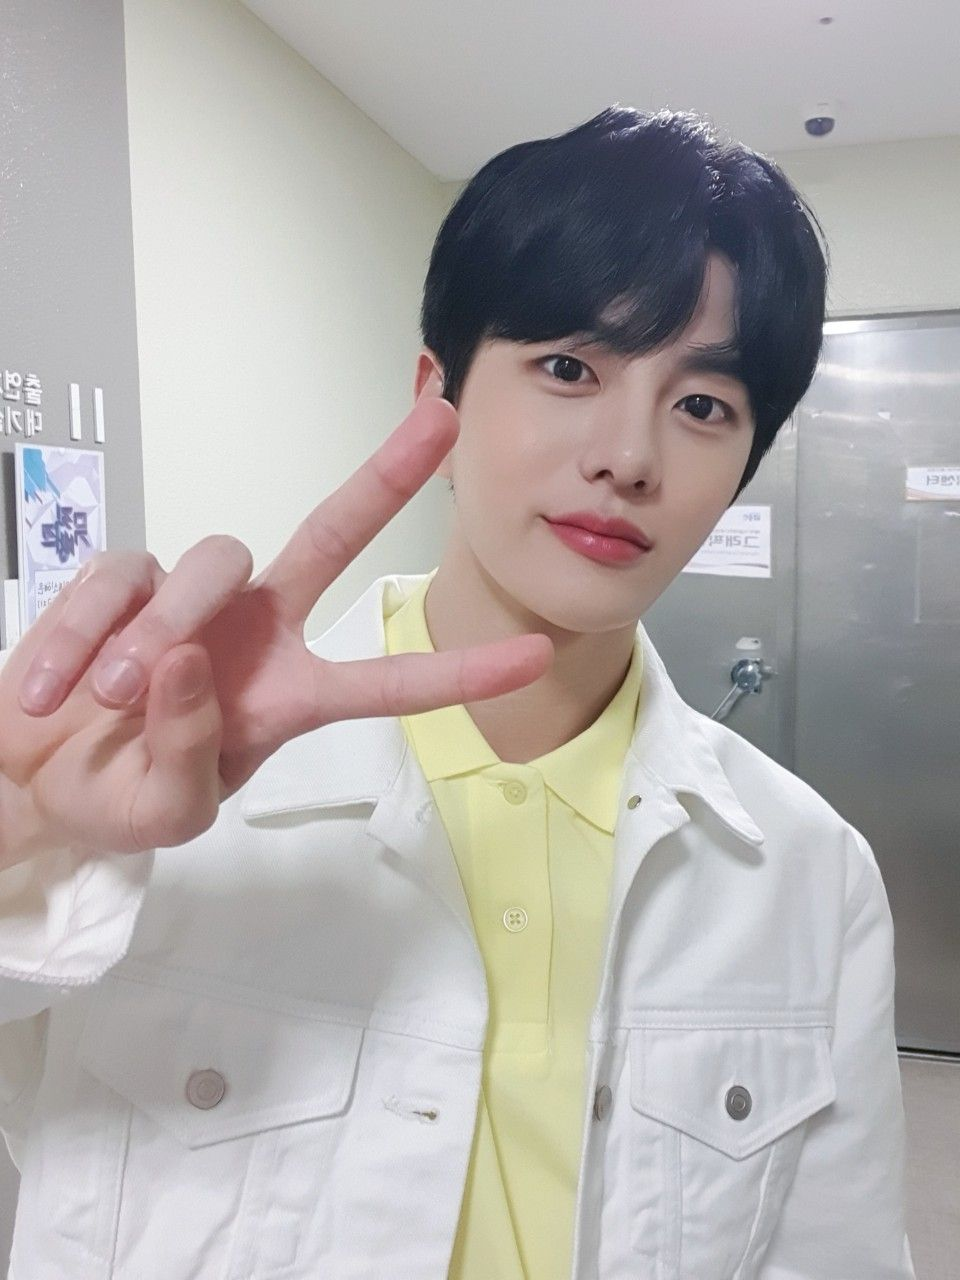 Choi Bomin in 2020 | Golden child, Boy idols, Love you very much